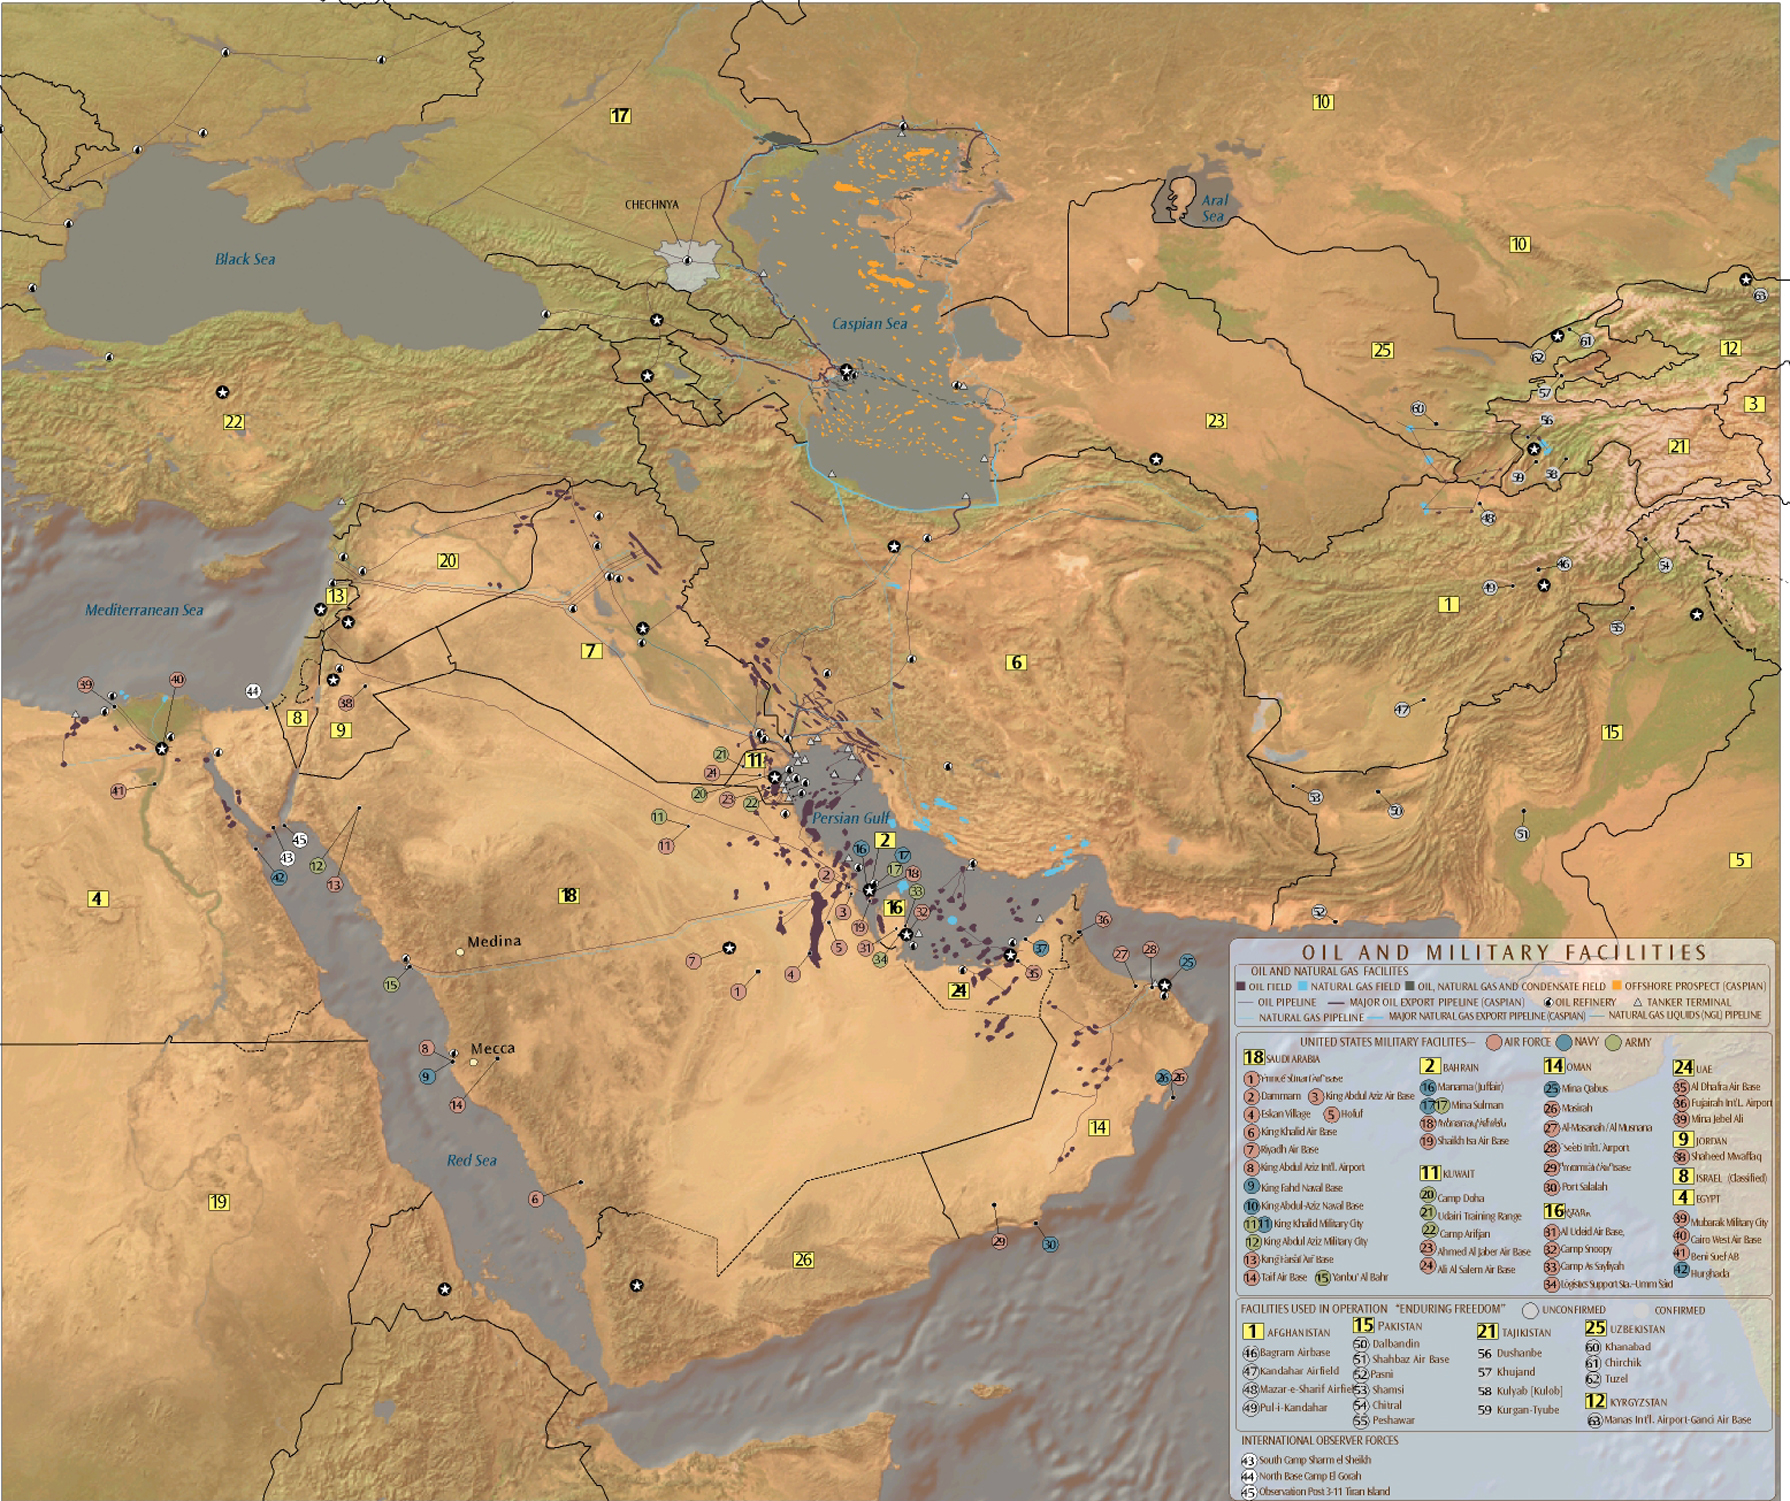 The Middle East Petroleum Systems Map